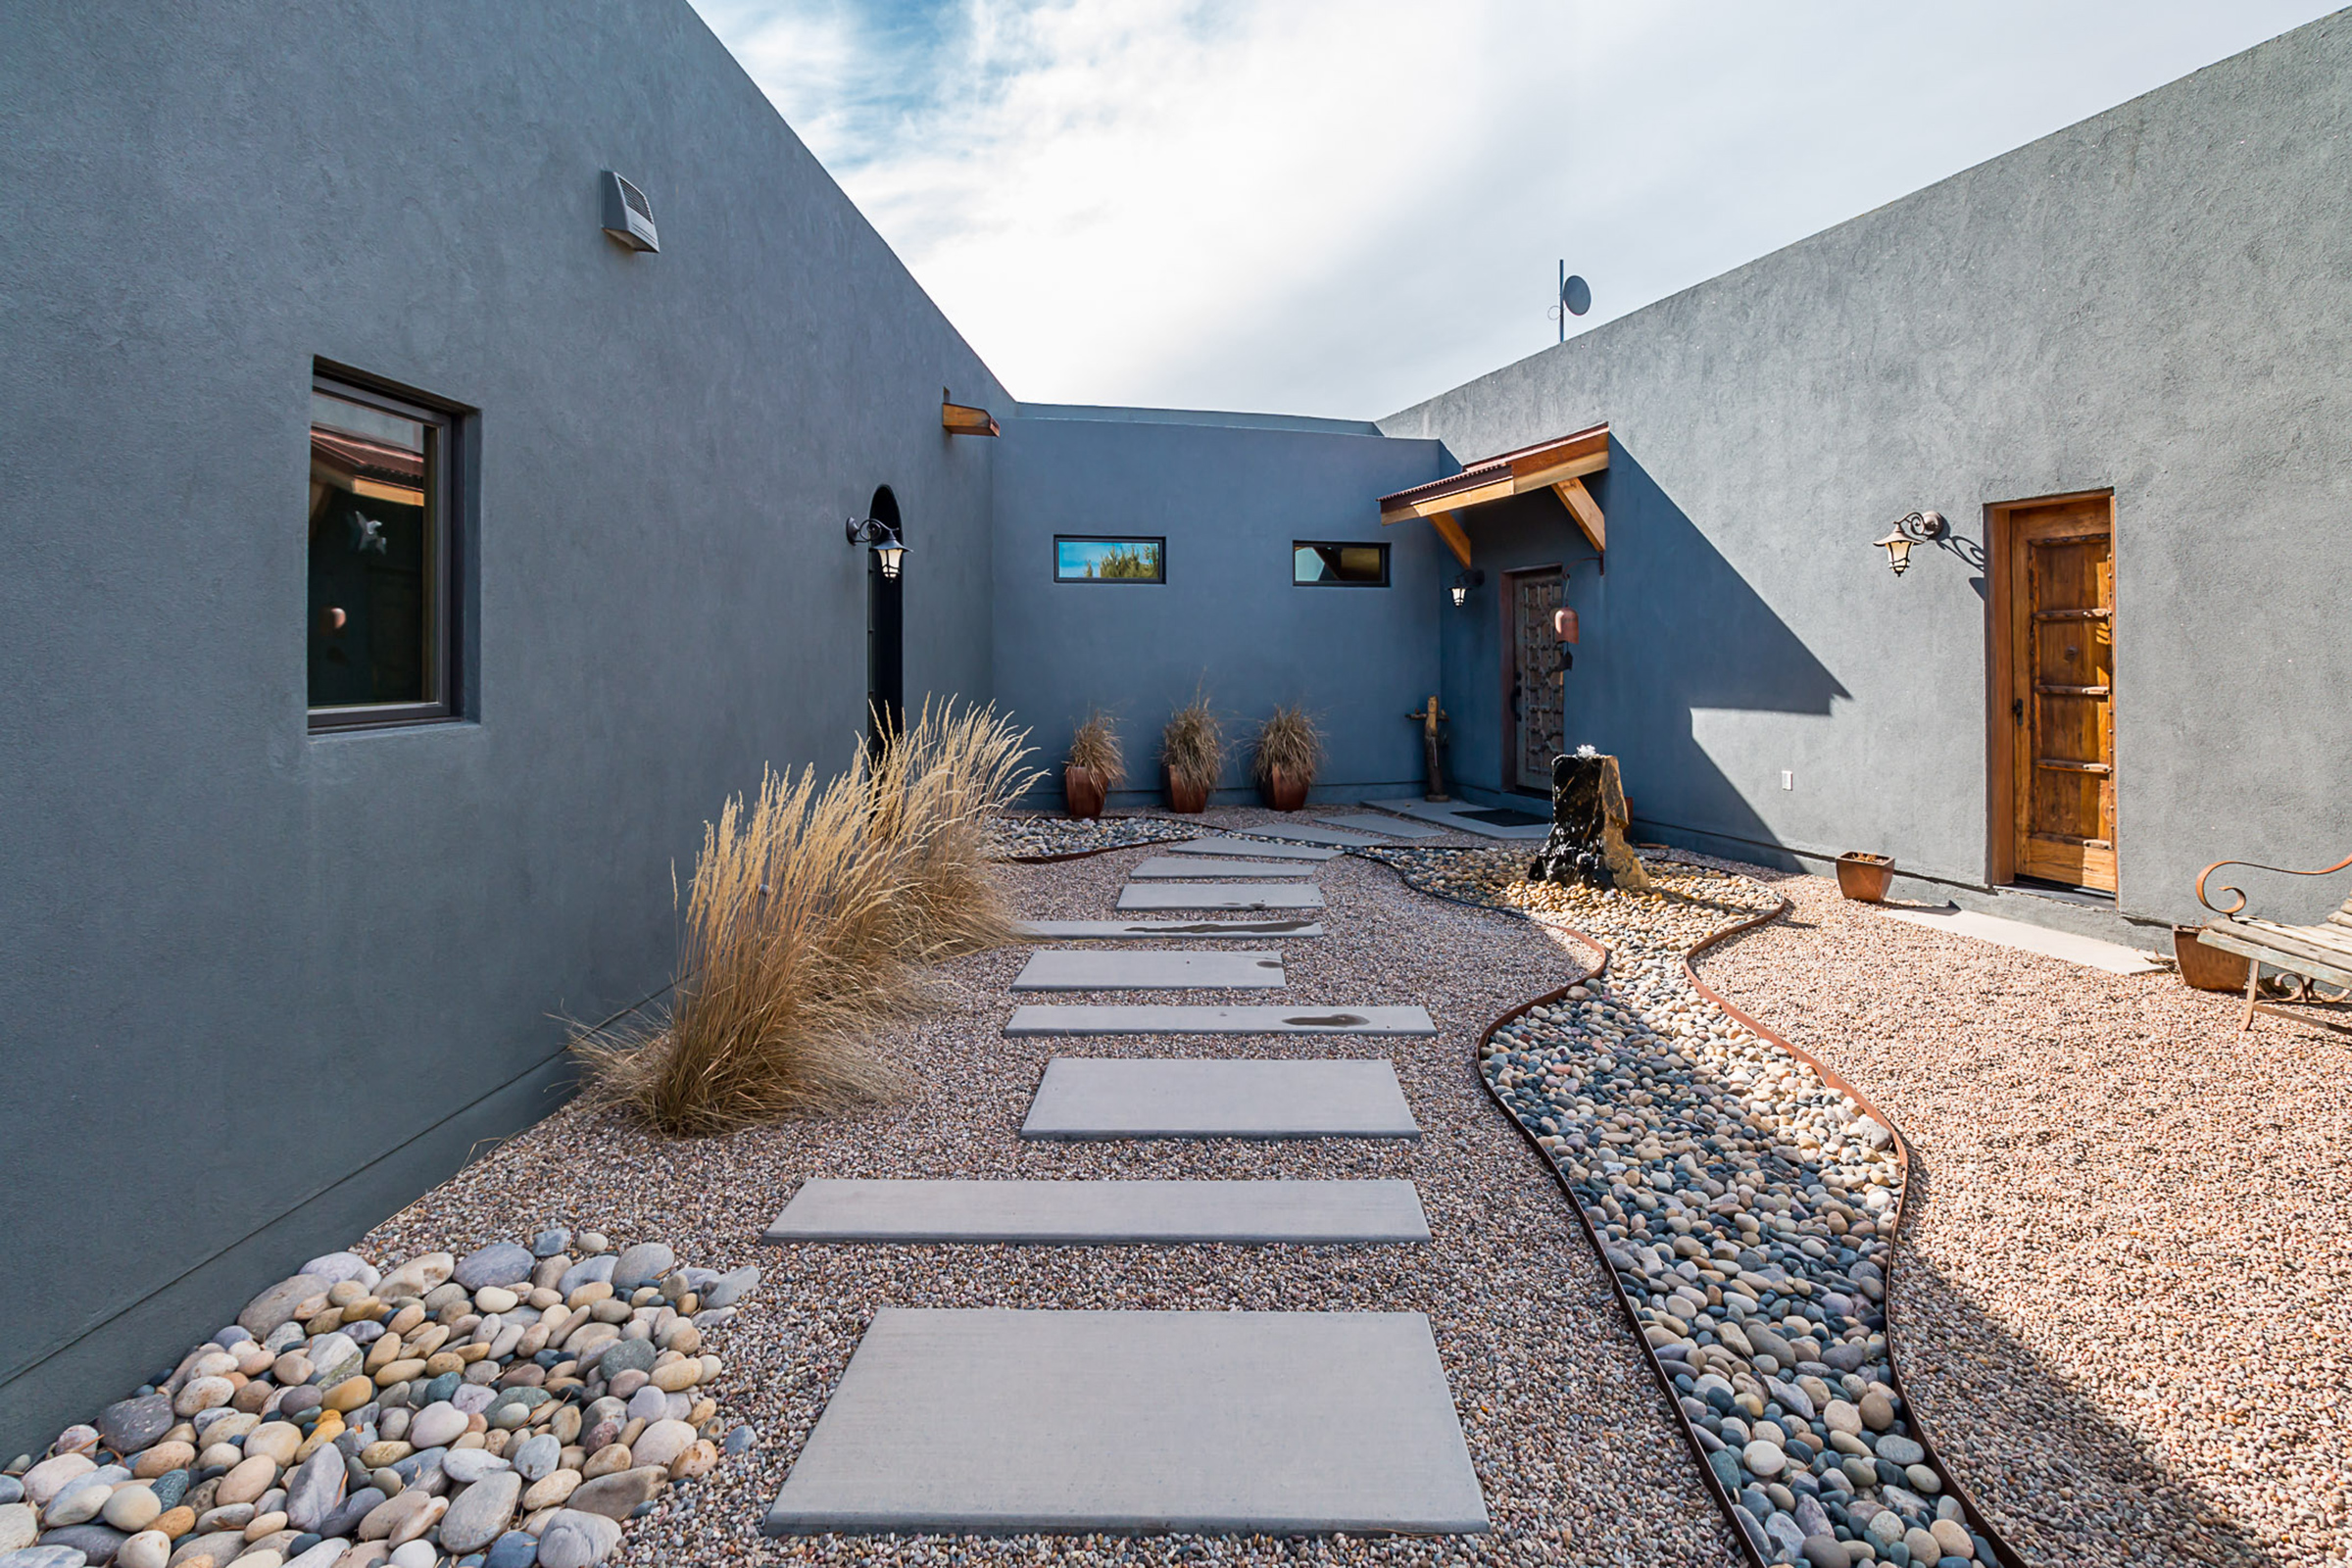 The courtyard of a southwestern home with a rock path